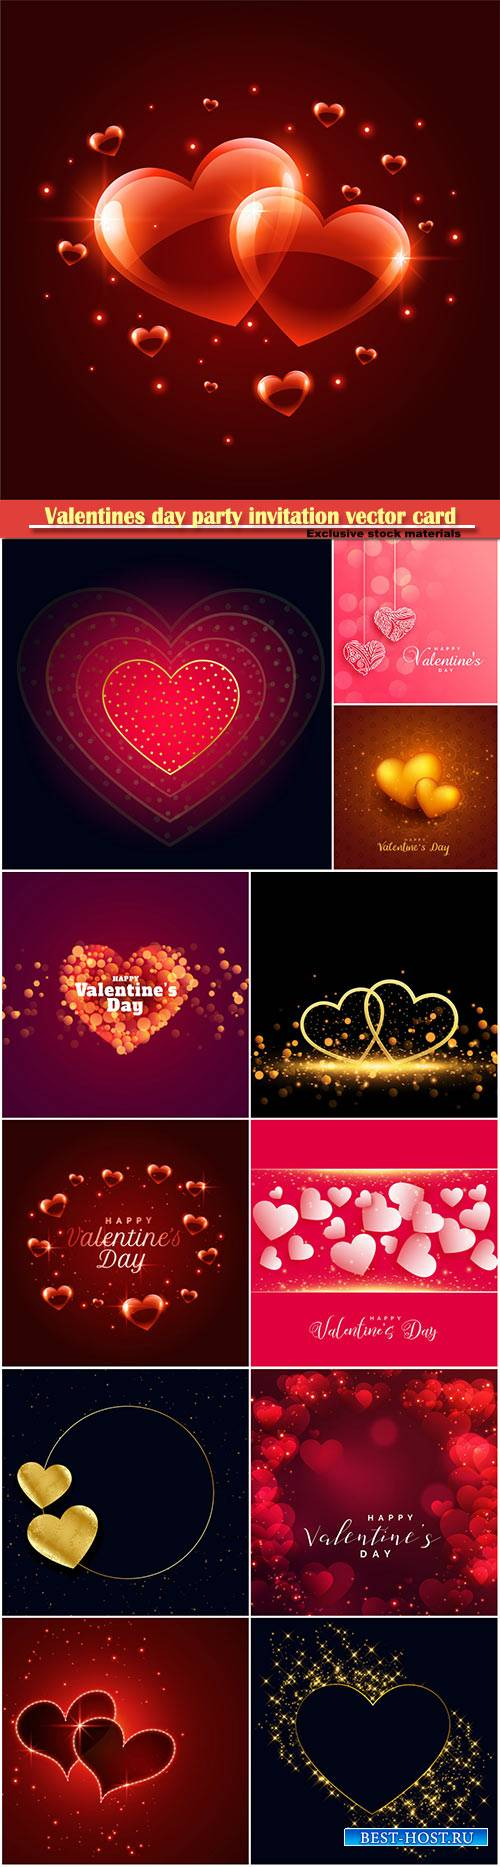 Valentines day party invitation vector card # 21